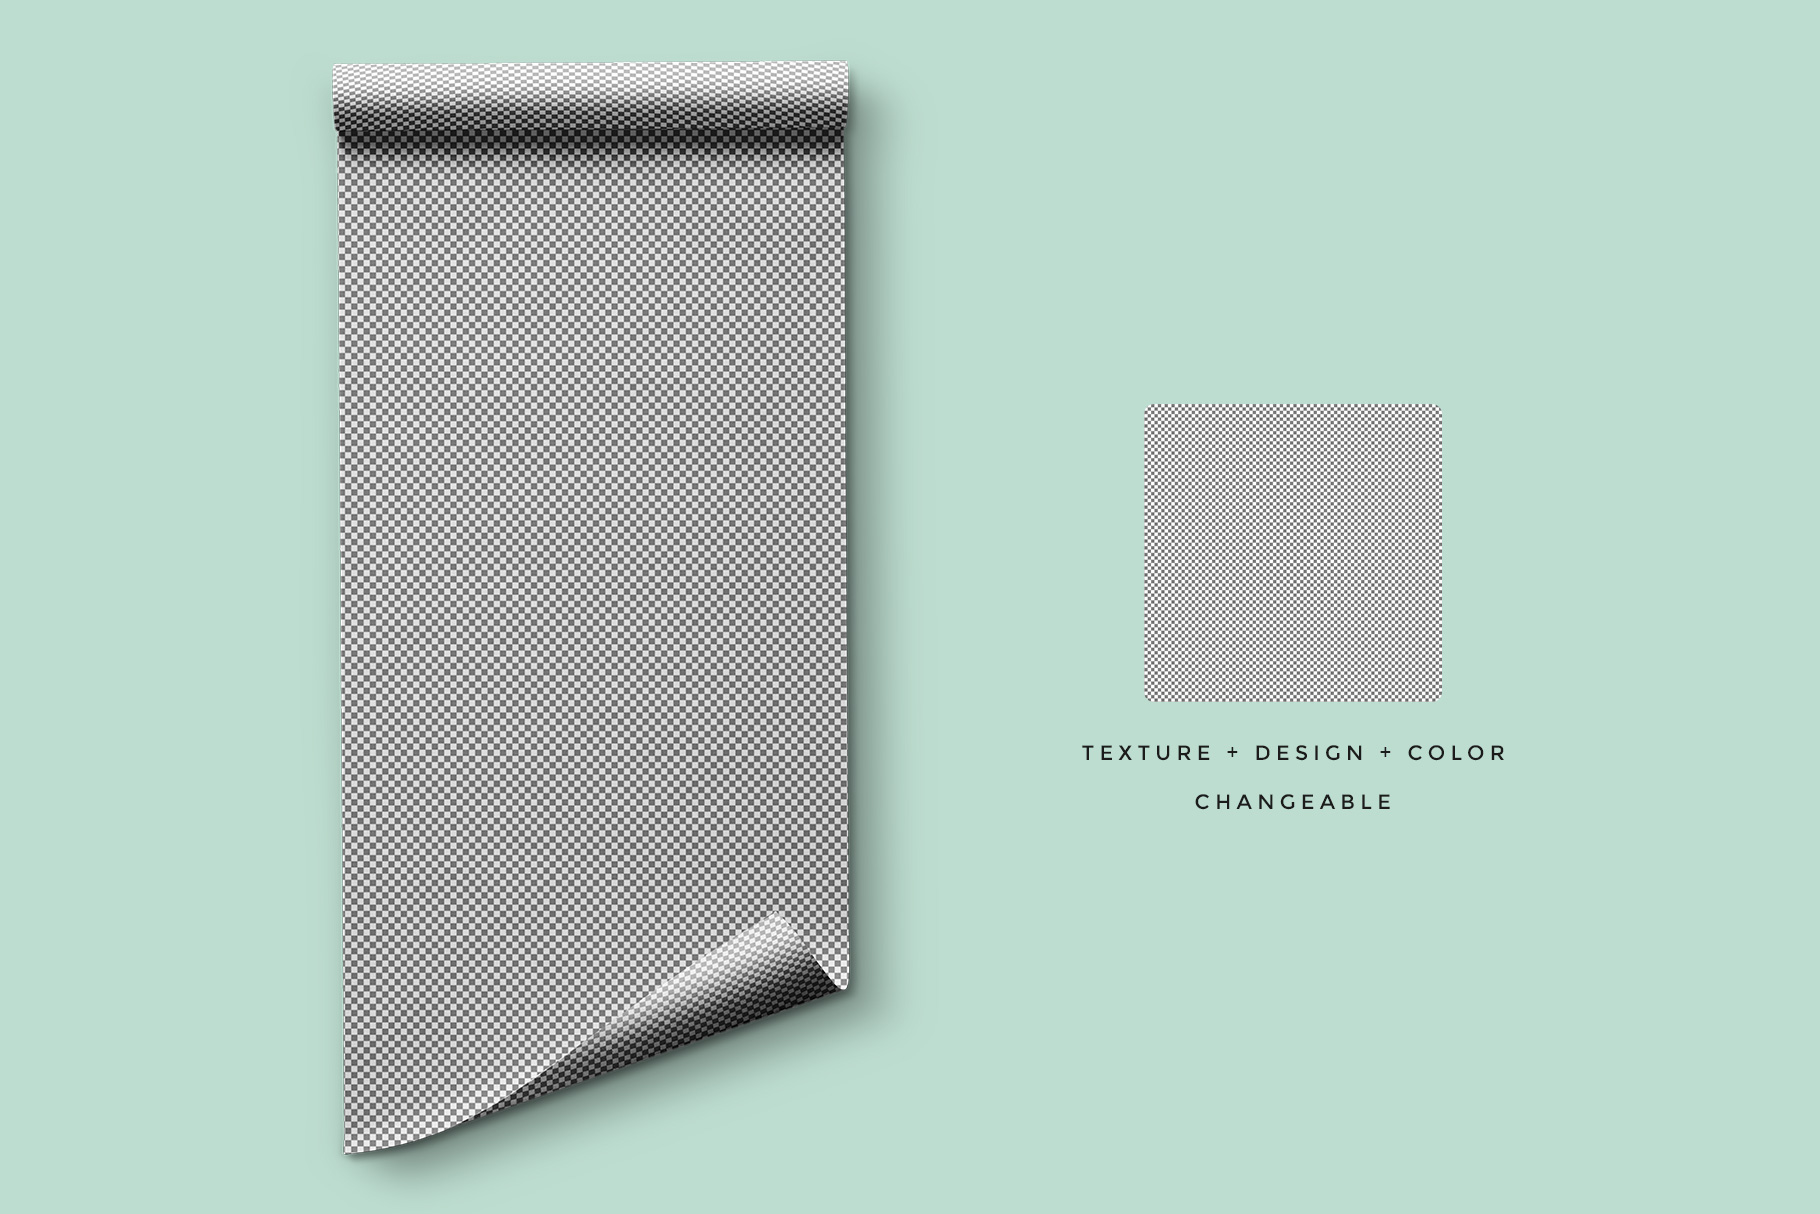 editability of the top view wrapping paper roll mockup